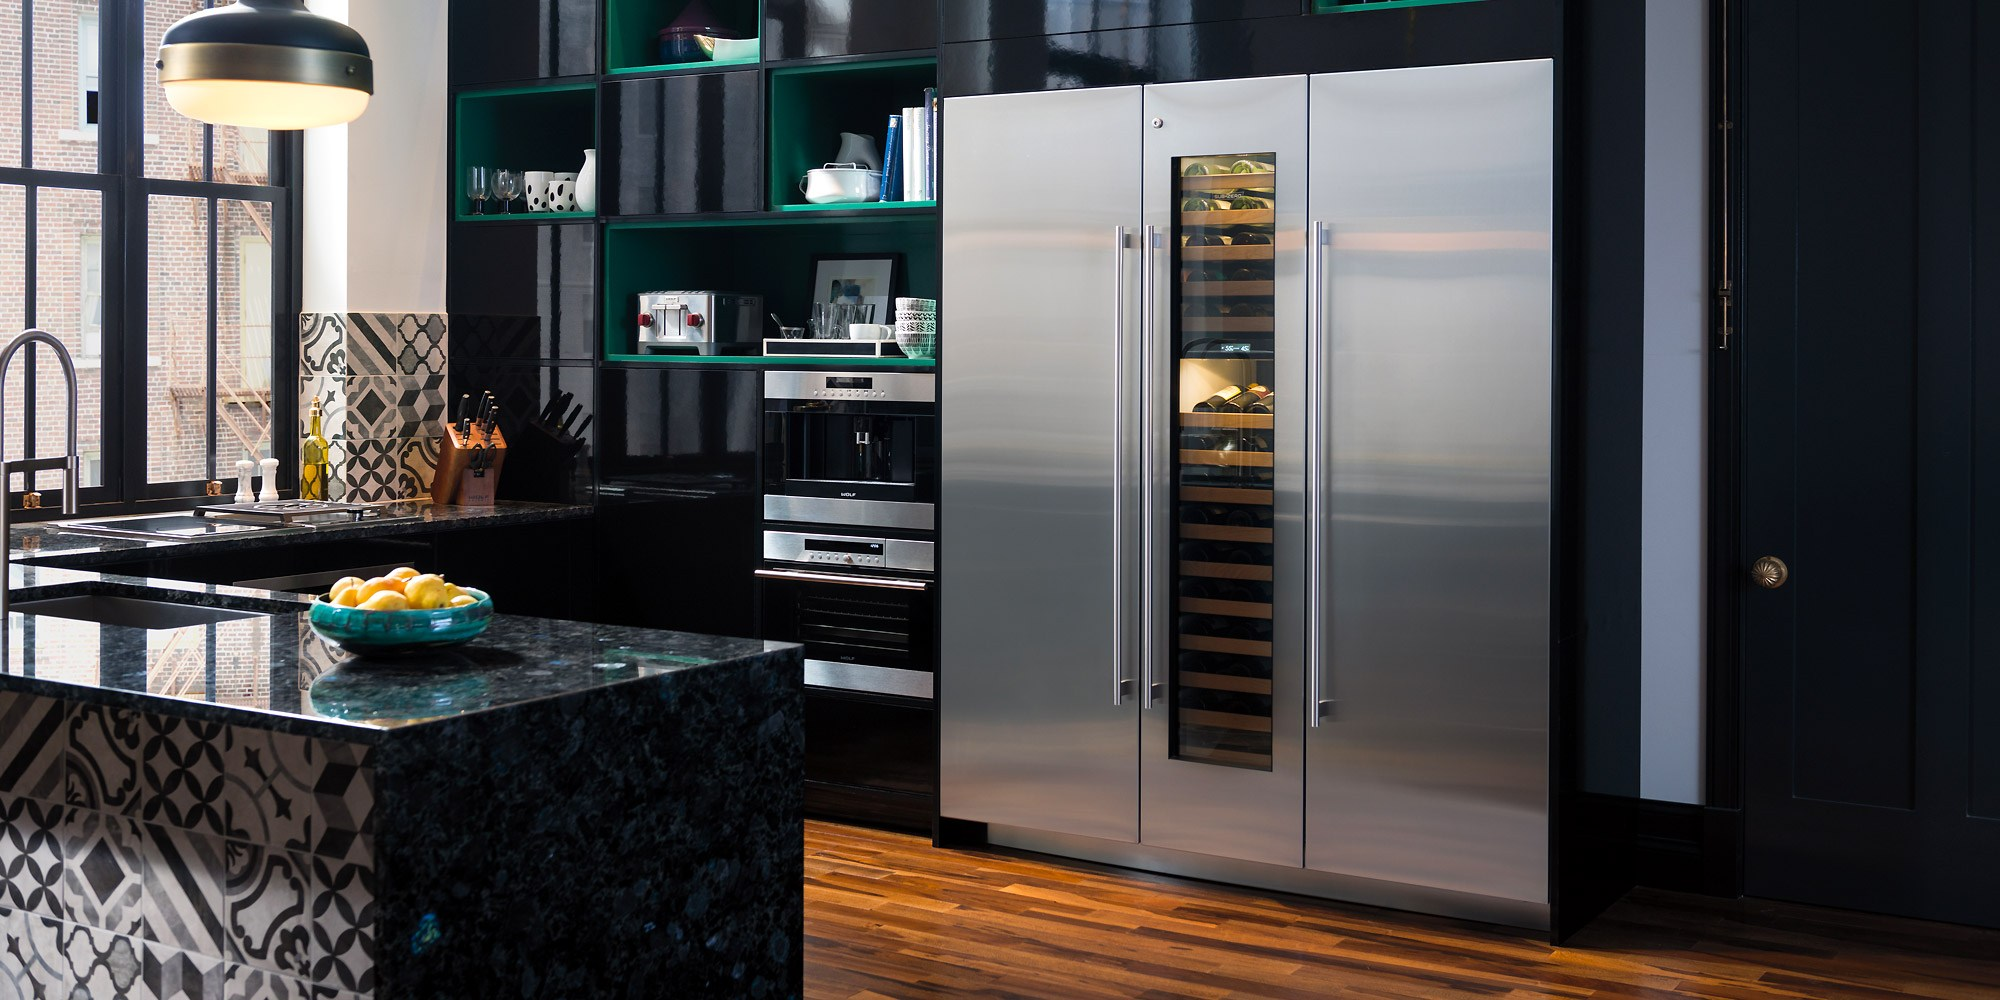 subzero-fridgefreezer-with-wine-cooler